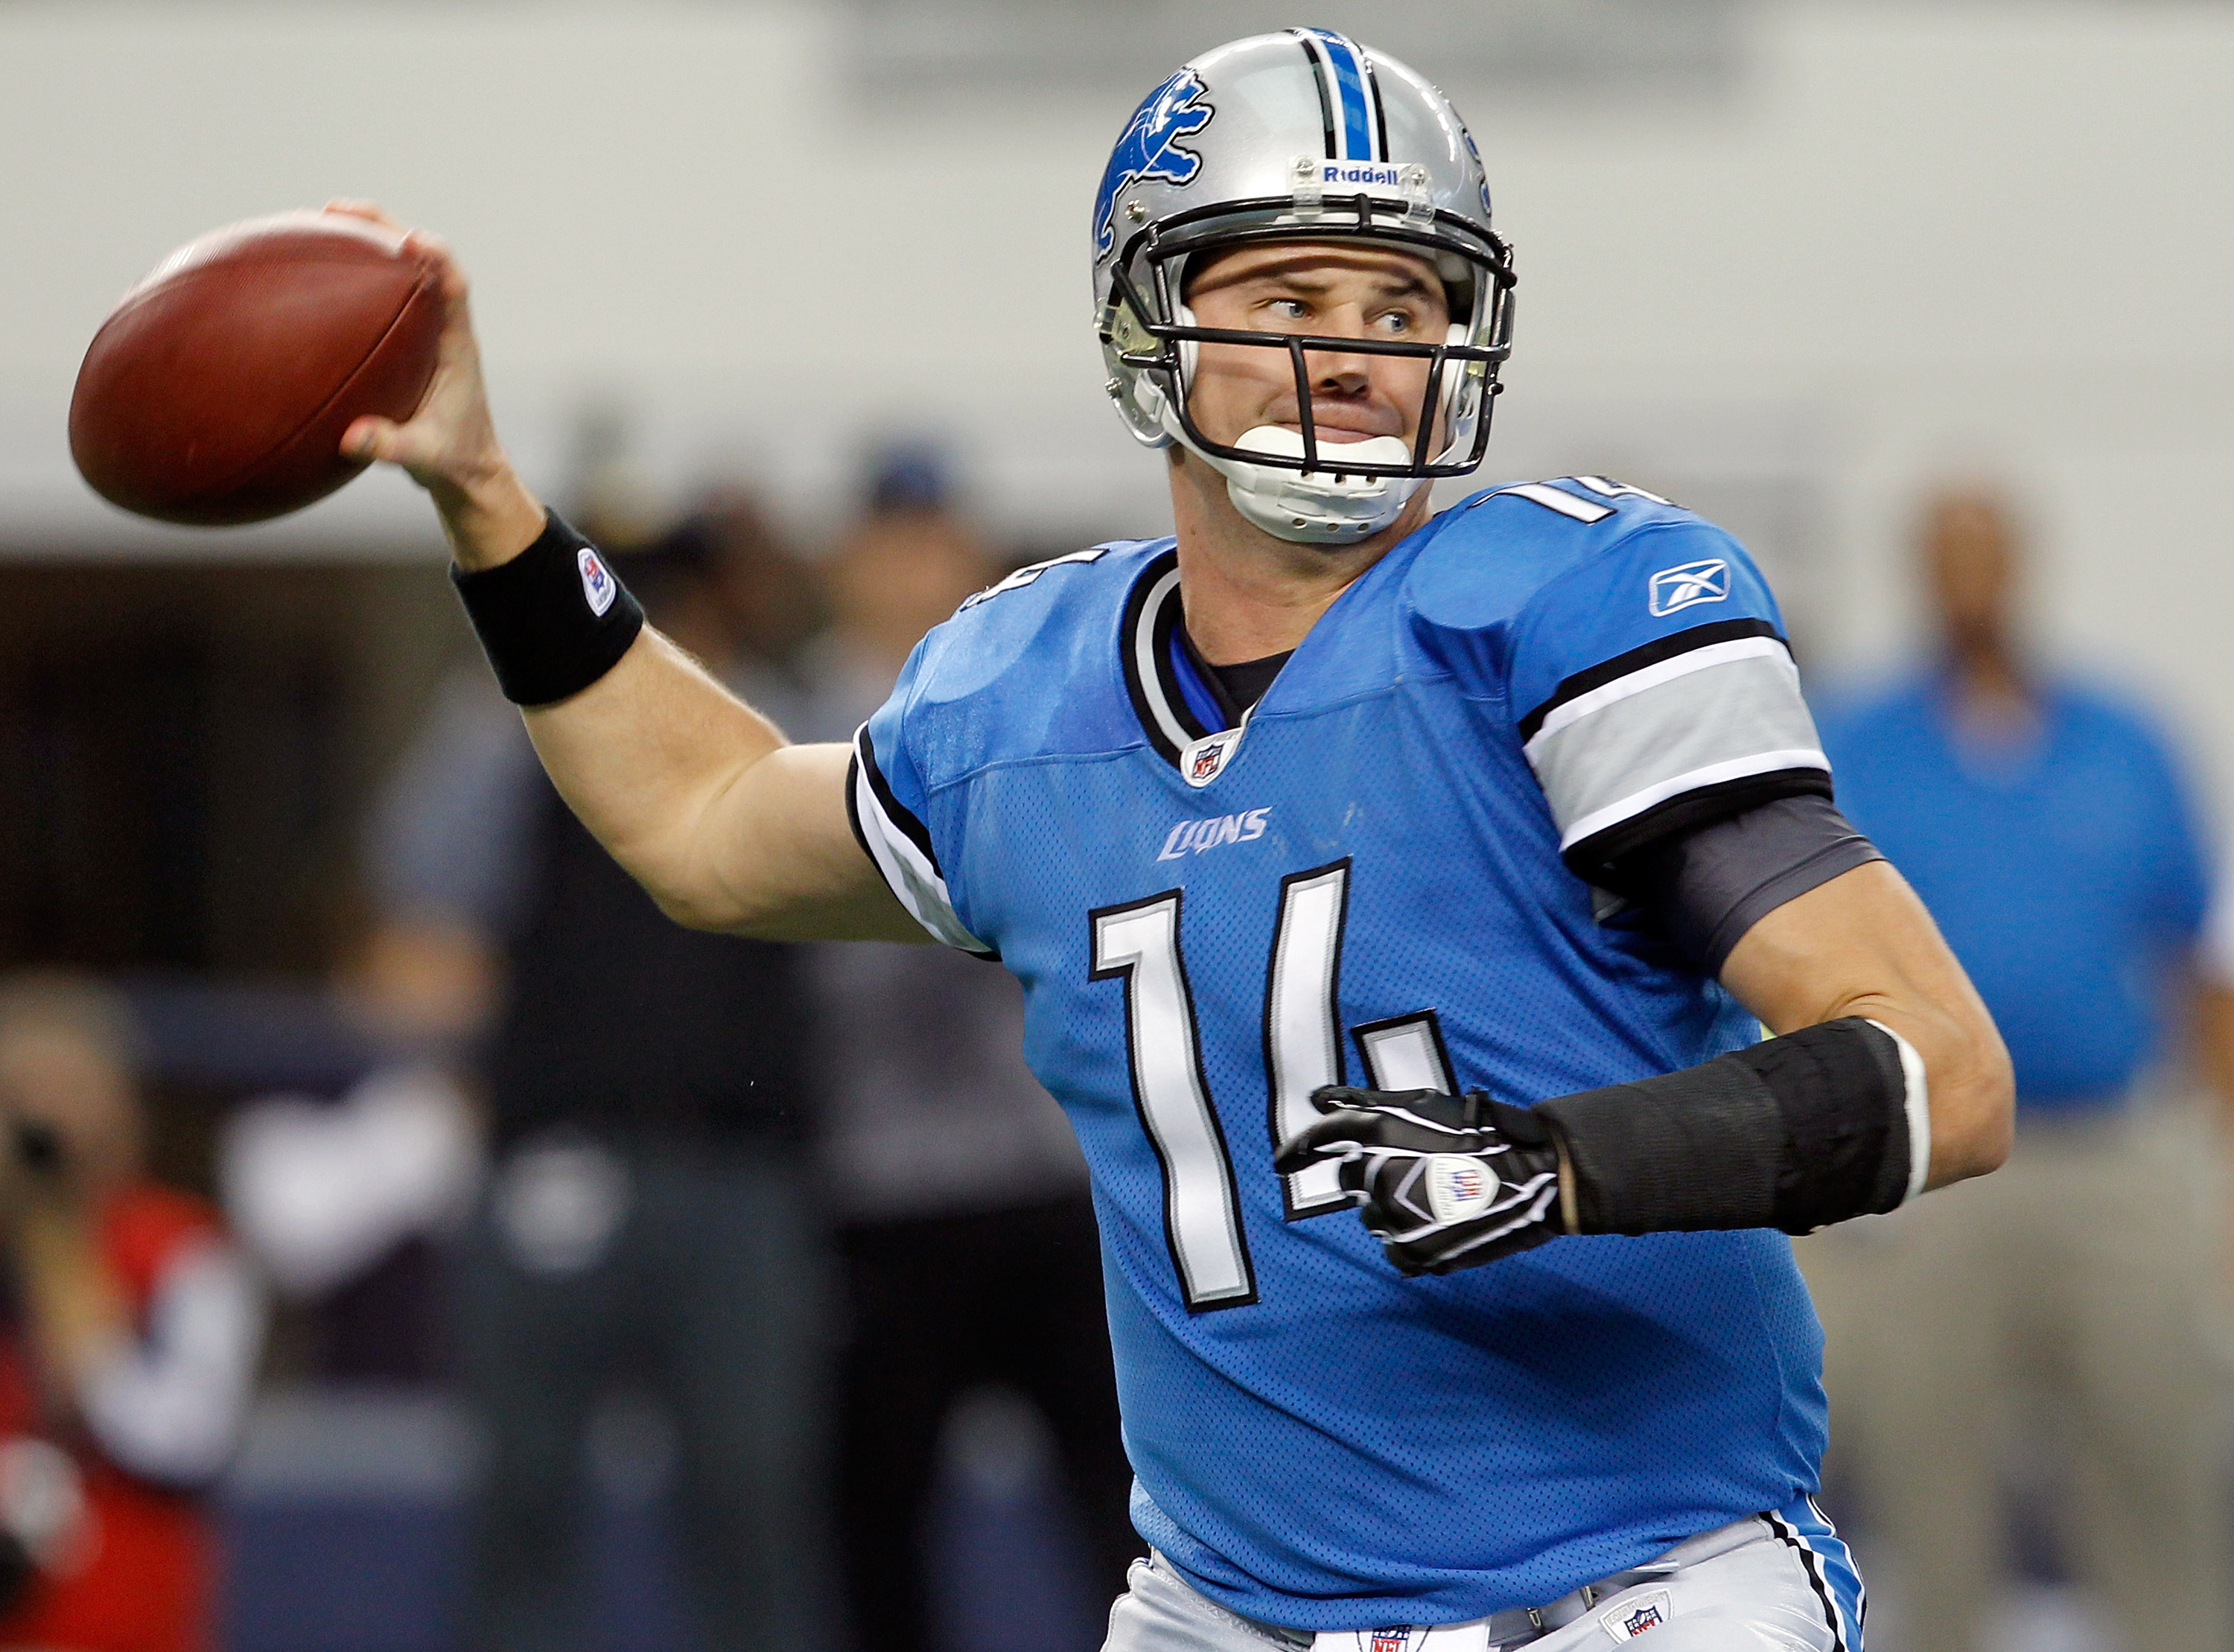 ARLINGTON, TX - NOVEMBER 21:  Quarterback Shaun Hill #14 of the Detroit Lions looks for an open receiver against the Dallas Cowboys at Cowboys Stadium on November 21, 2010 in Arlington, Texas.  The Cowboys beat the Lions 35-19.  (Photo by Tom Pennington/G